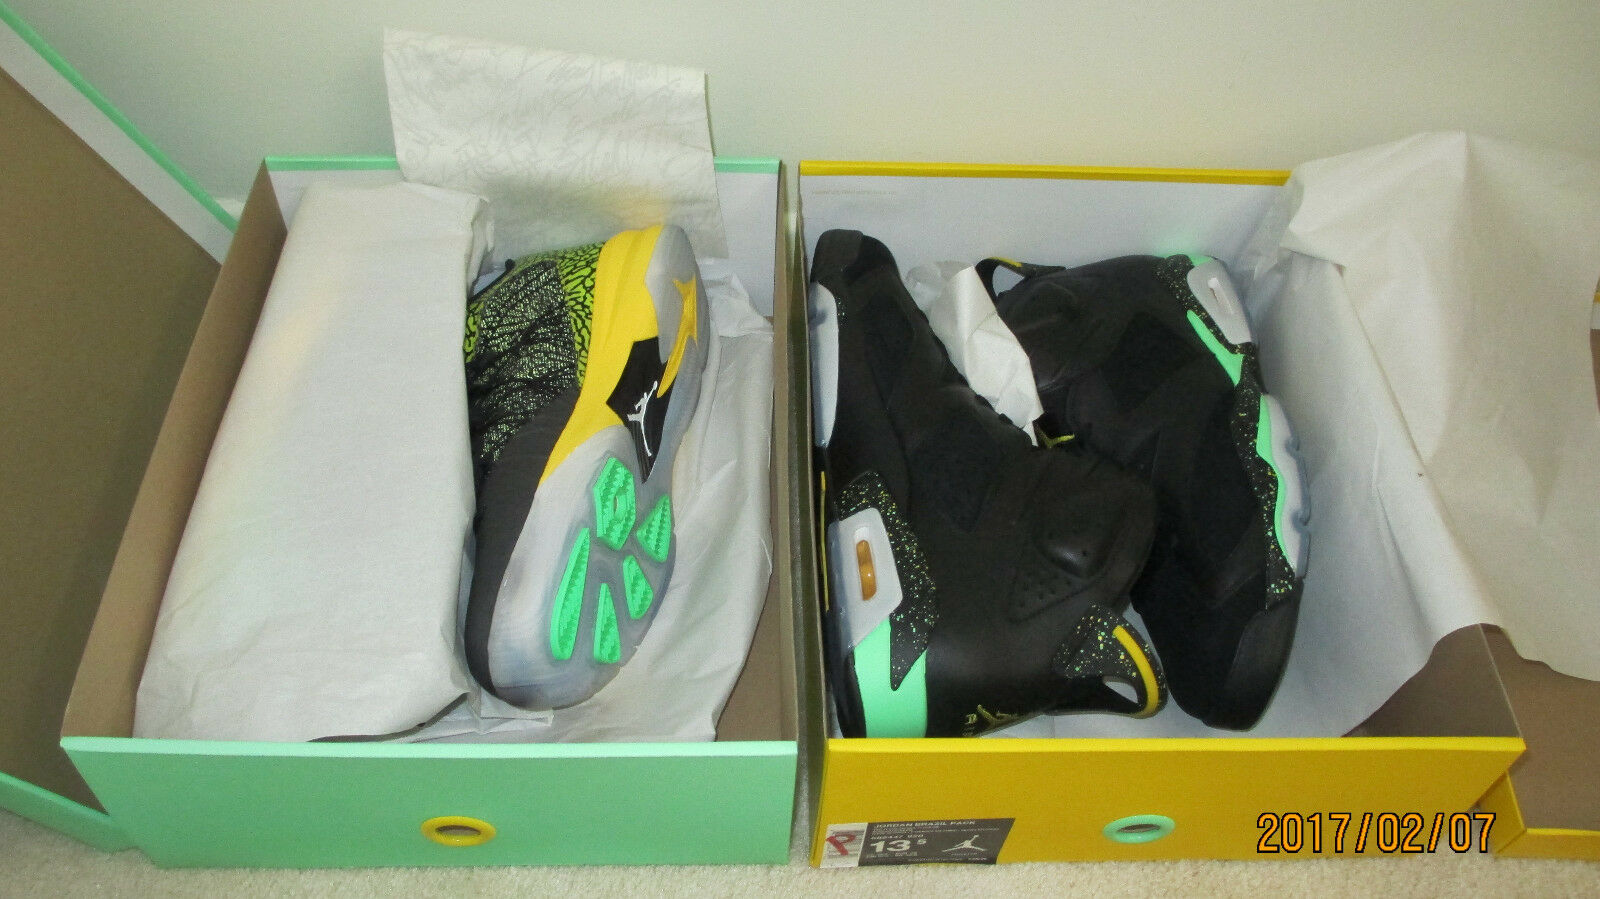 Nike Air Jordan 688447 920 Brazil Pack DS Price reduction Comfortable and good-looking